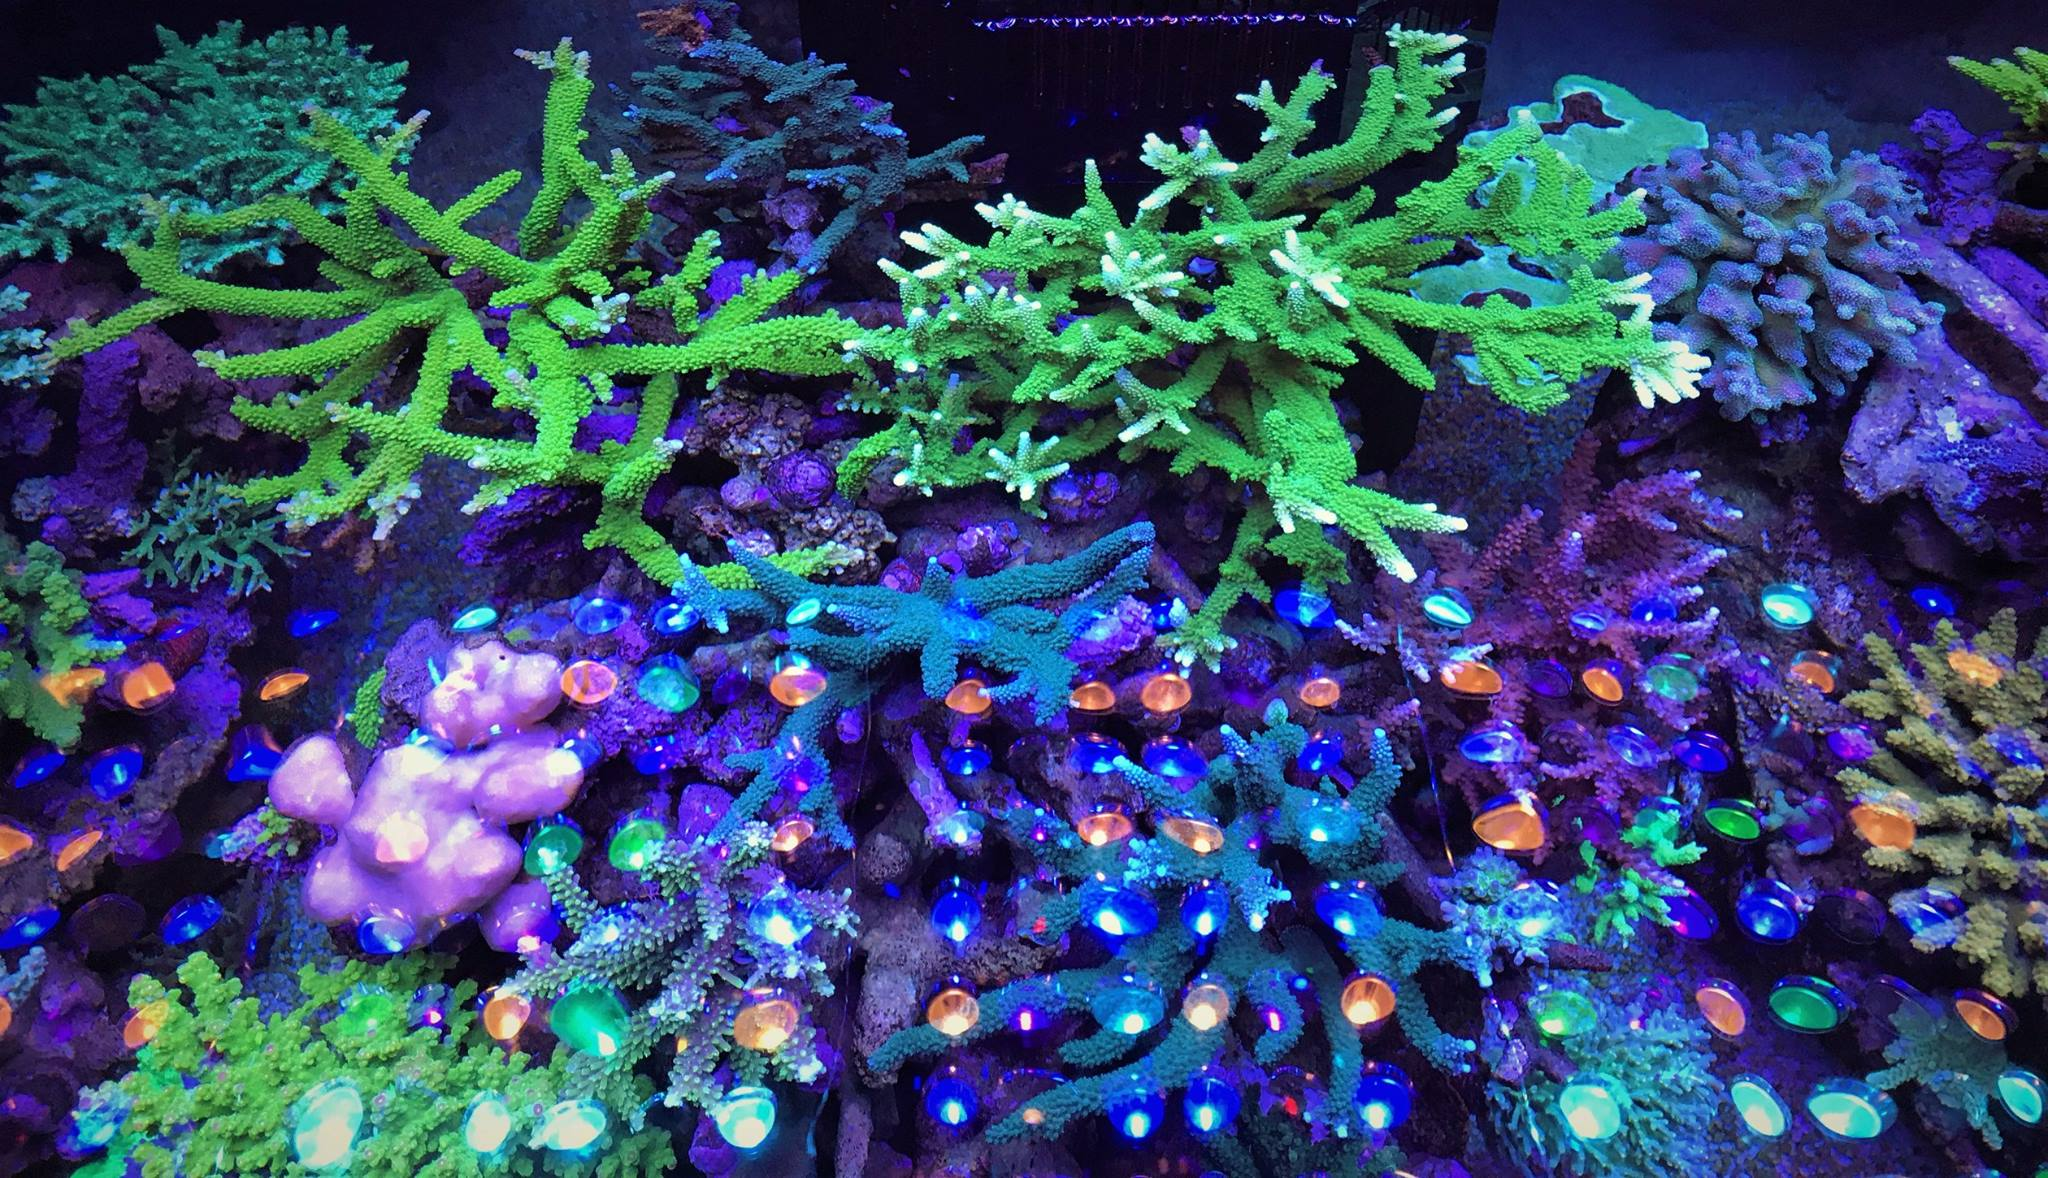 Eclairage Aquarium Led Avis Aquarium Led Lighting Photos Meilleurs Galerie D 39éclairage